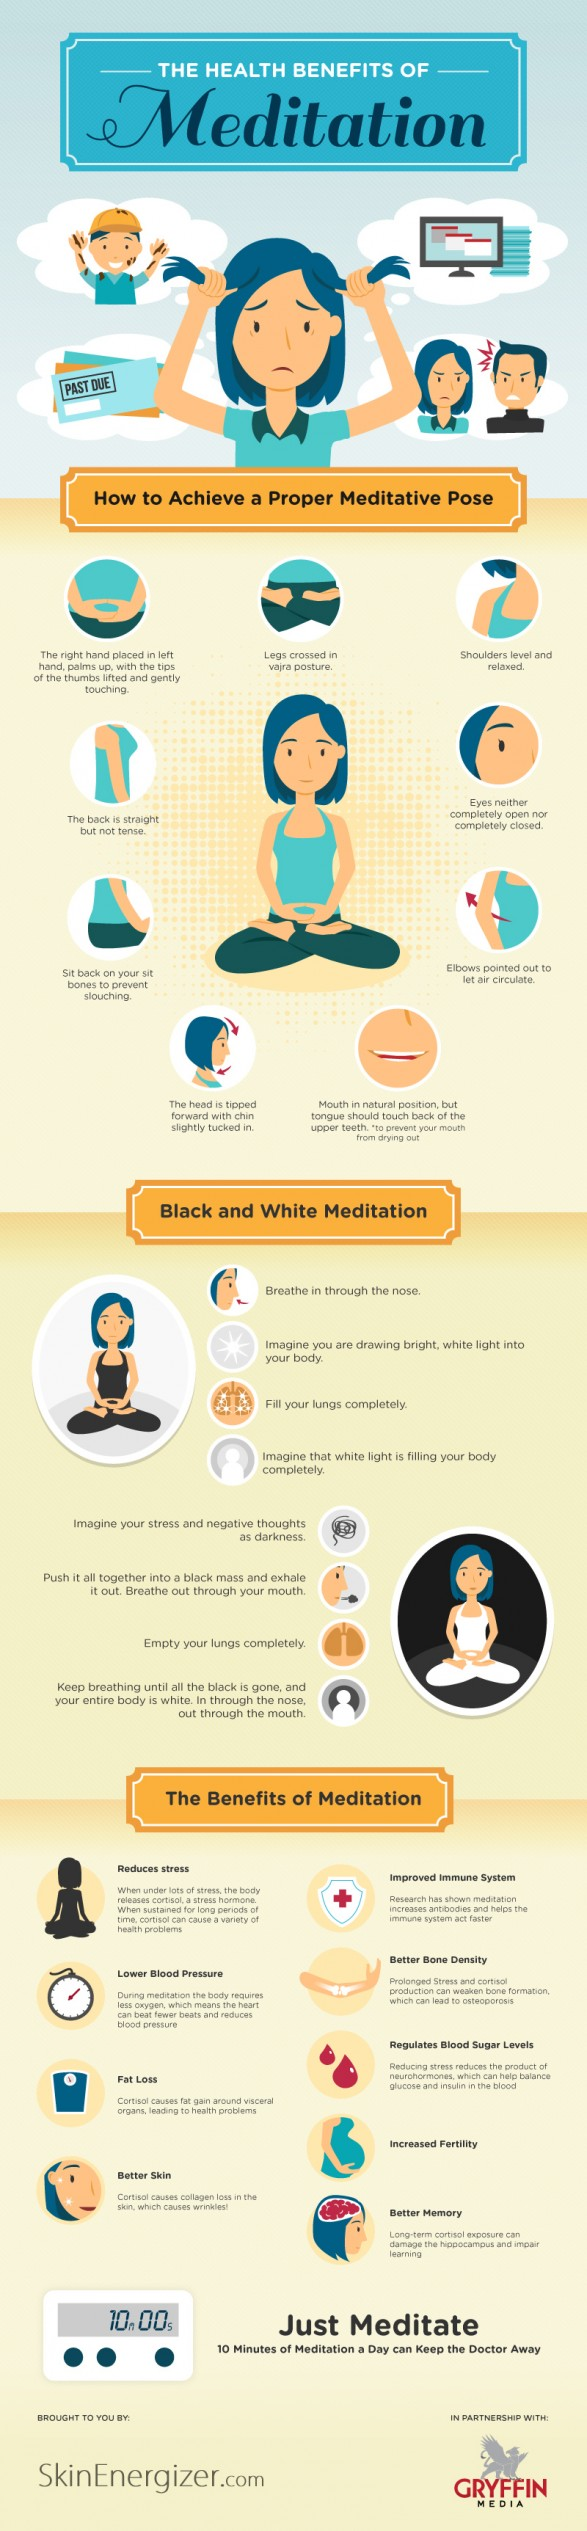 The Health Benifits of Meditation